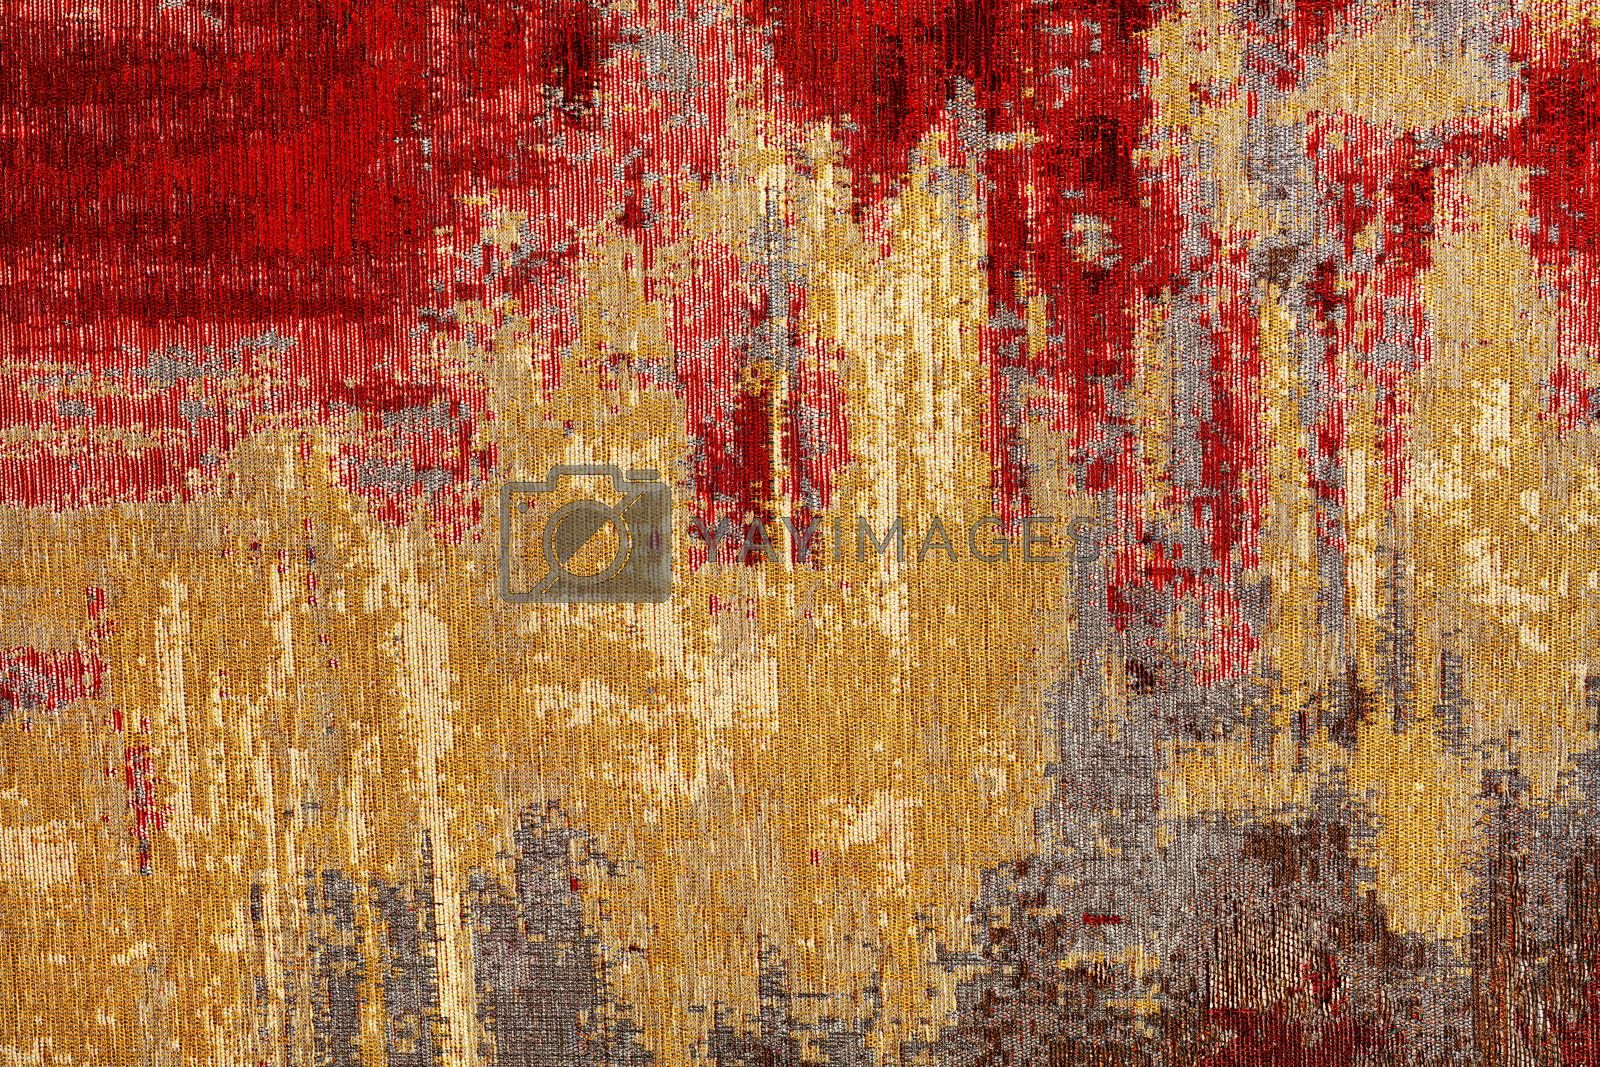 Texture of oriental red-gold carpet tapestry with abstract pattern, closeup.